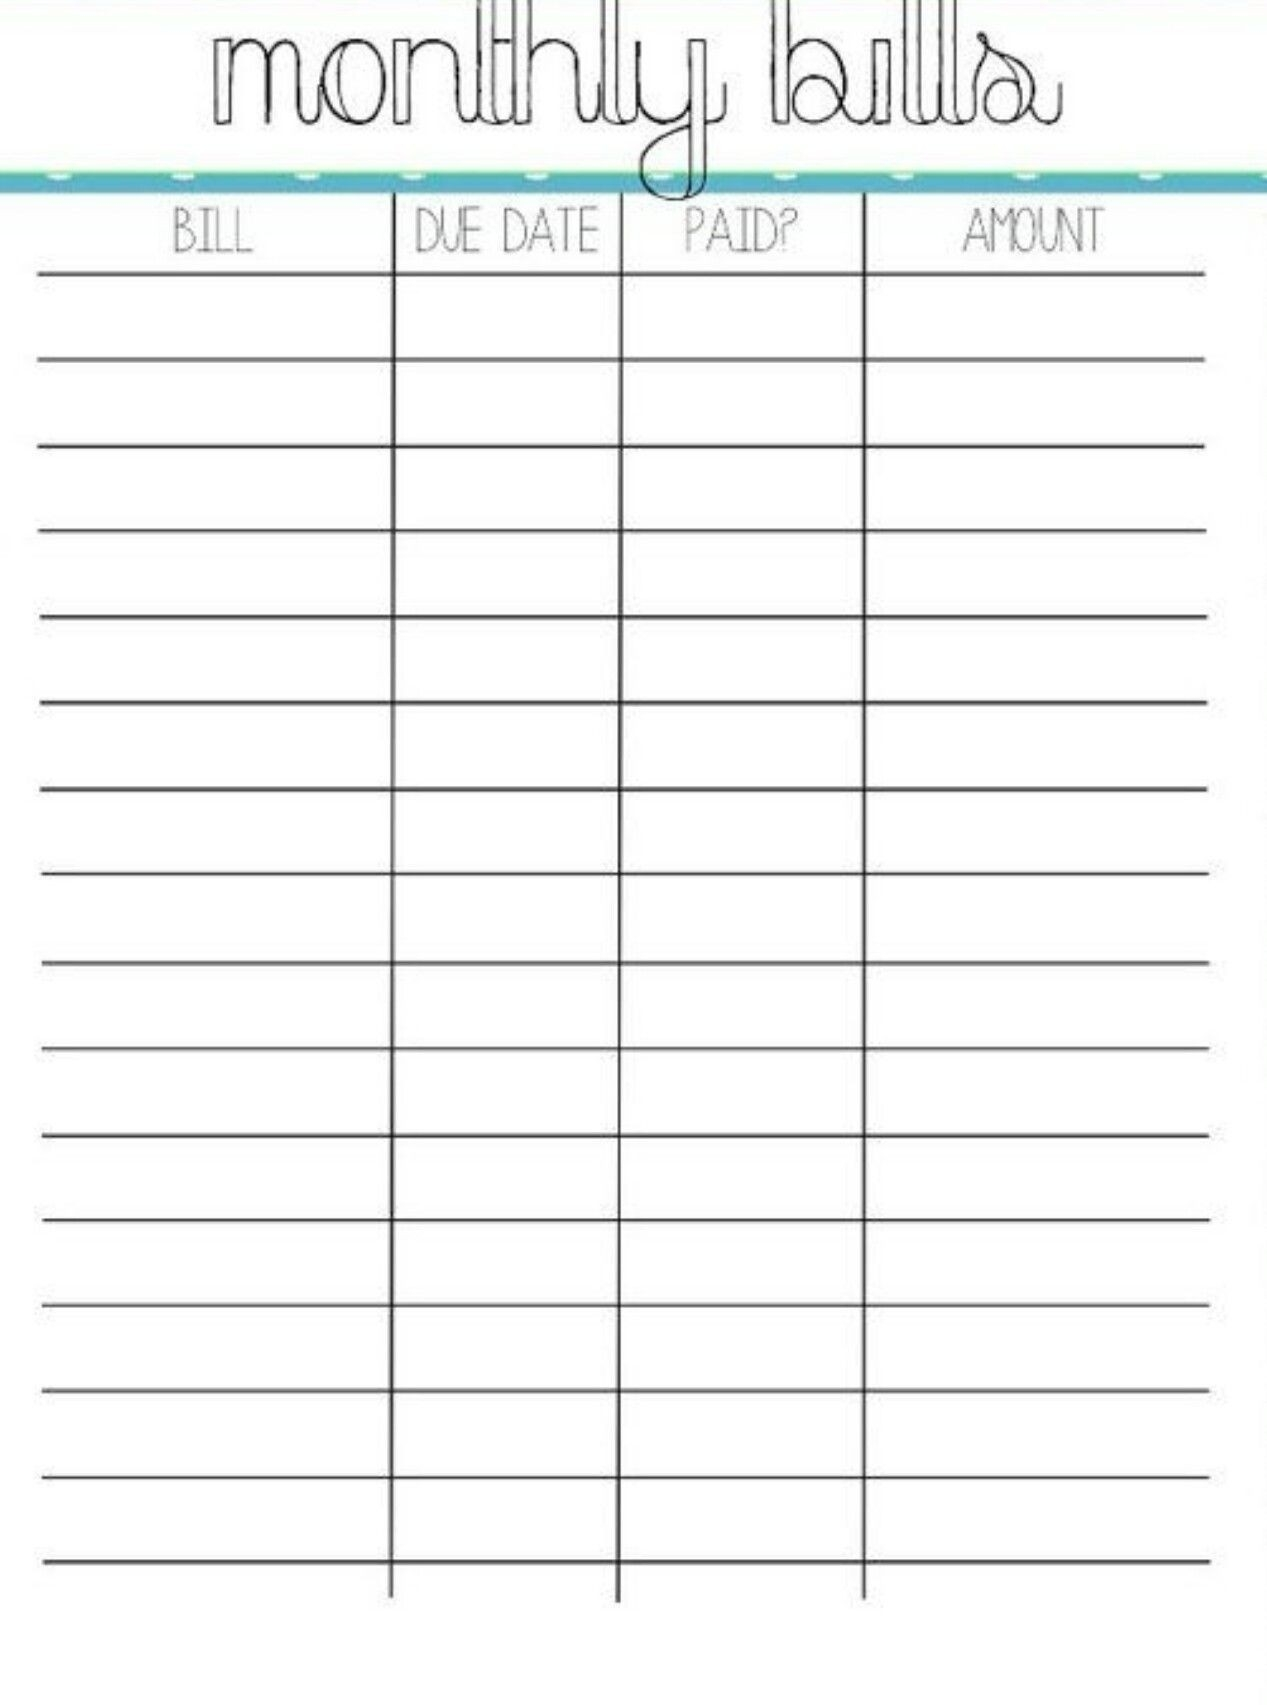 Bills Budget Spreadsheet Bill Payment Monthly Worksheet Pin-Blank Monthly Bill Payment Worksheet